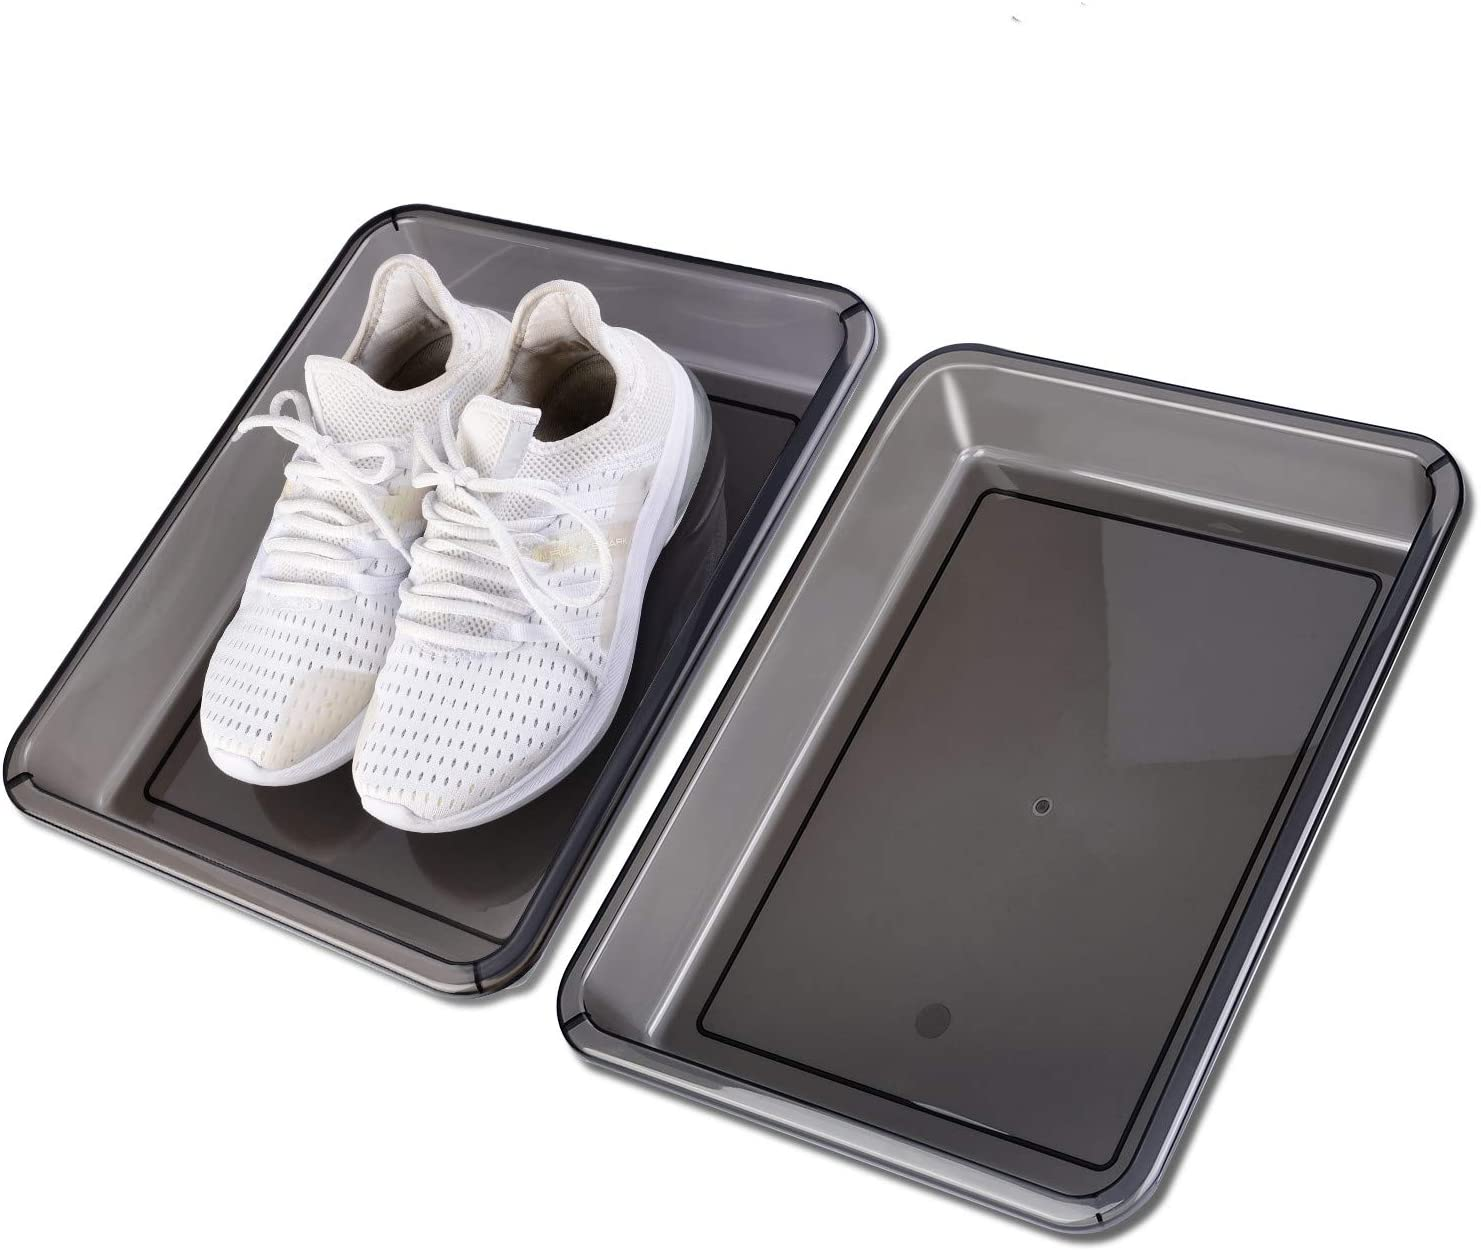 "Boot Mat Tray For Heavy Duty Floor Protection-Pet Bowls-Paint-Dog Bowls, Multi-Purpose,car, Shoes, Pets, Garden - Mudroom, Entryway, Garage-Indoor And Outdoor Friendly (15.0''x11.8""x2.25"" 2ps)"